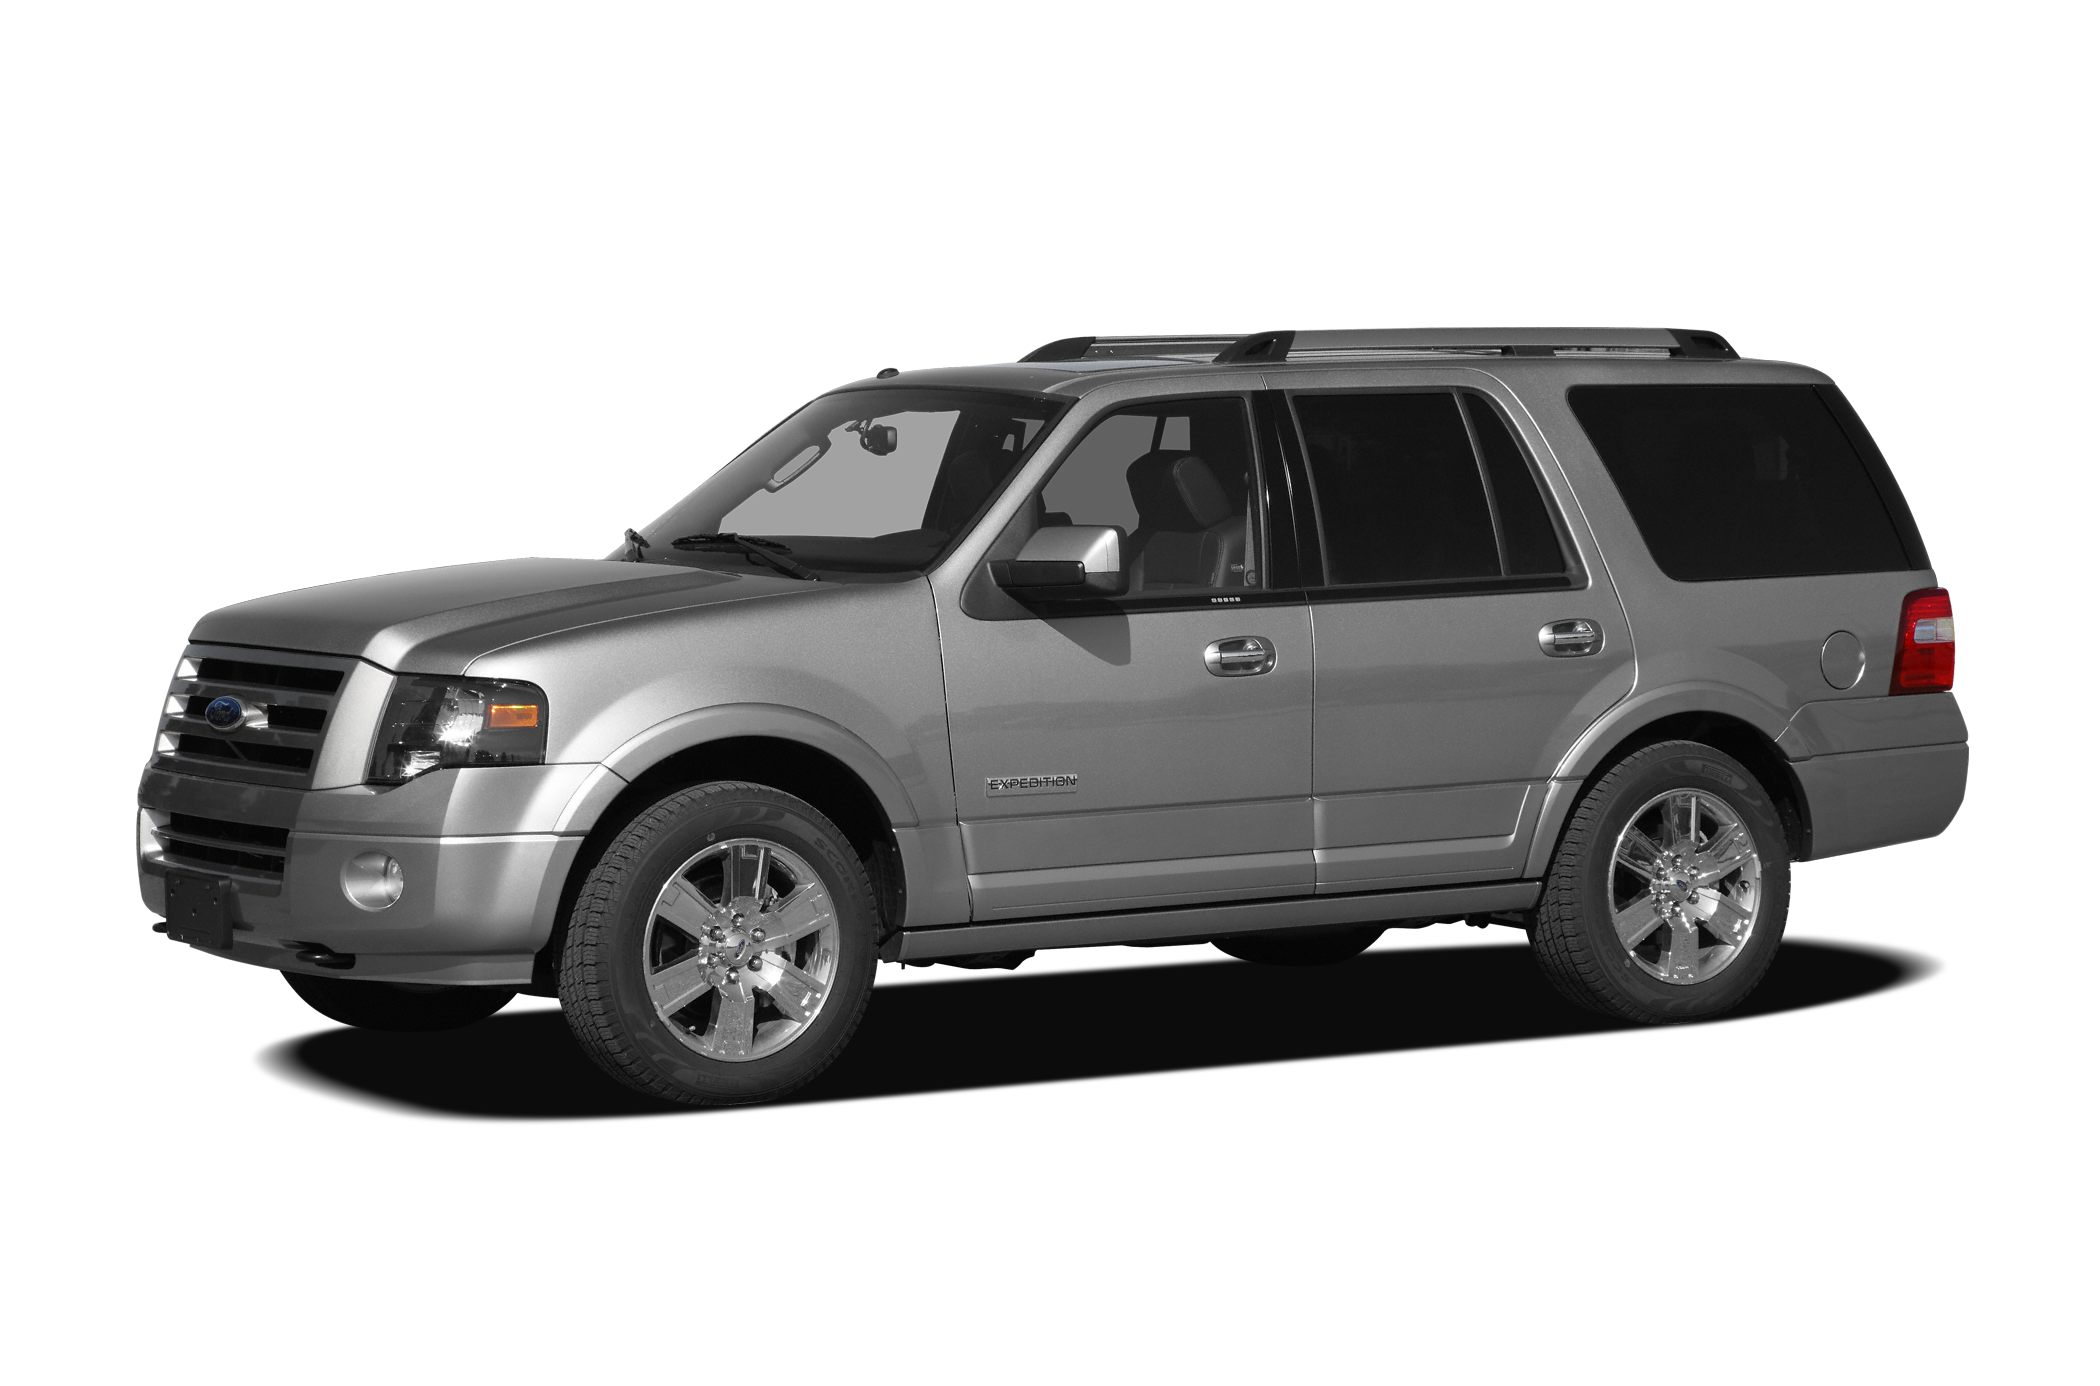 2009 ford expedition eddie bauer 4dr 4x4 specs and prices 2009 ford expedition eddie bauer 4dr 4x4 specs and prices